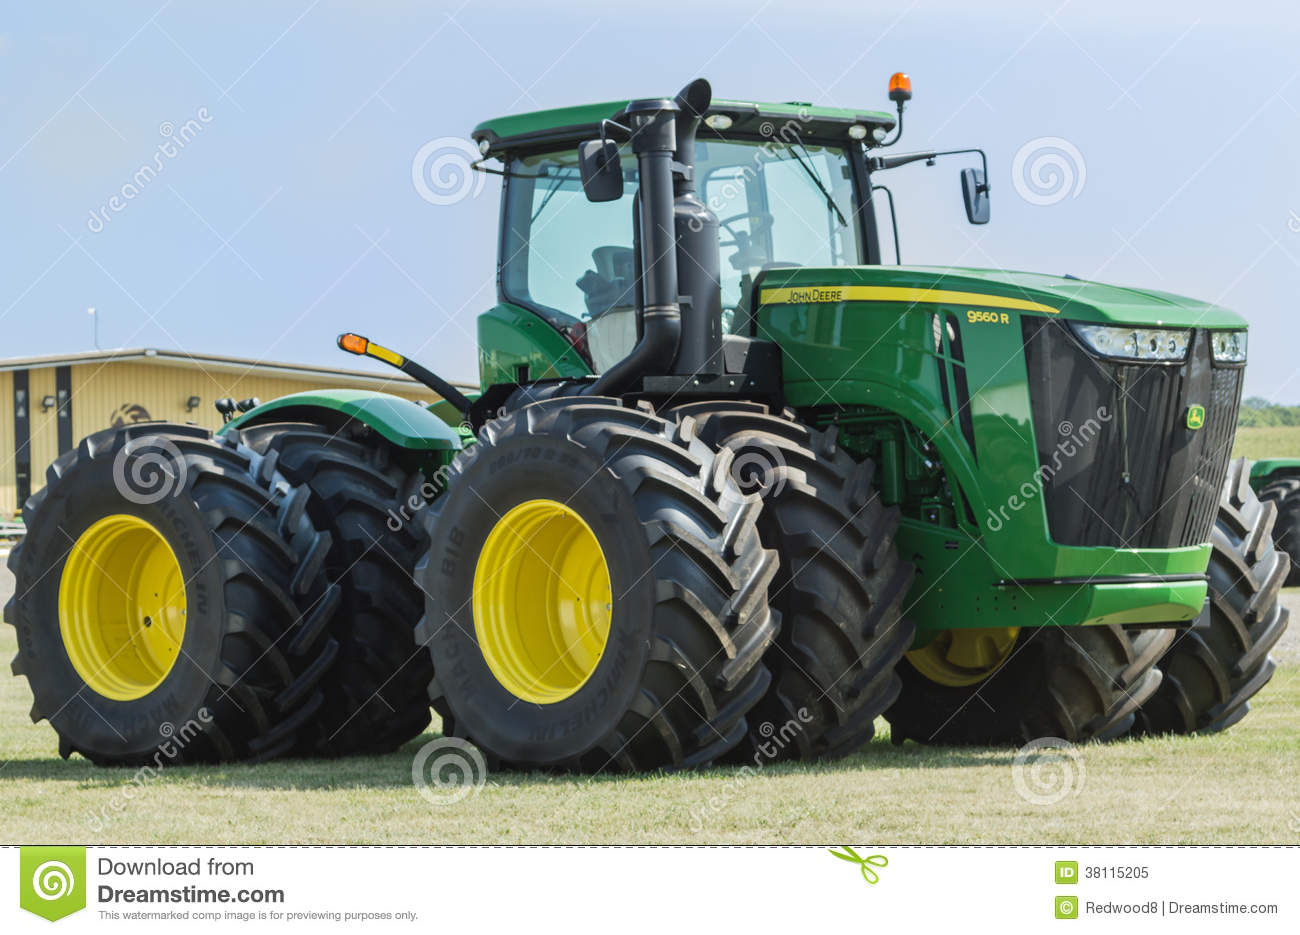 john deere captivity insist